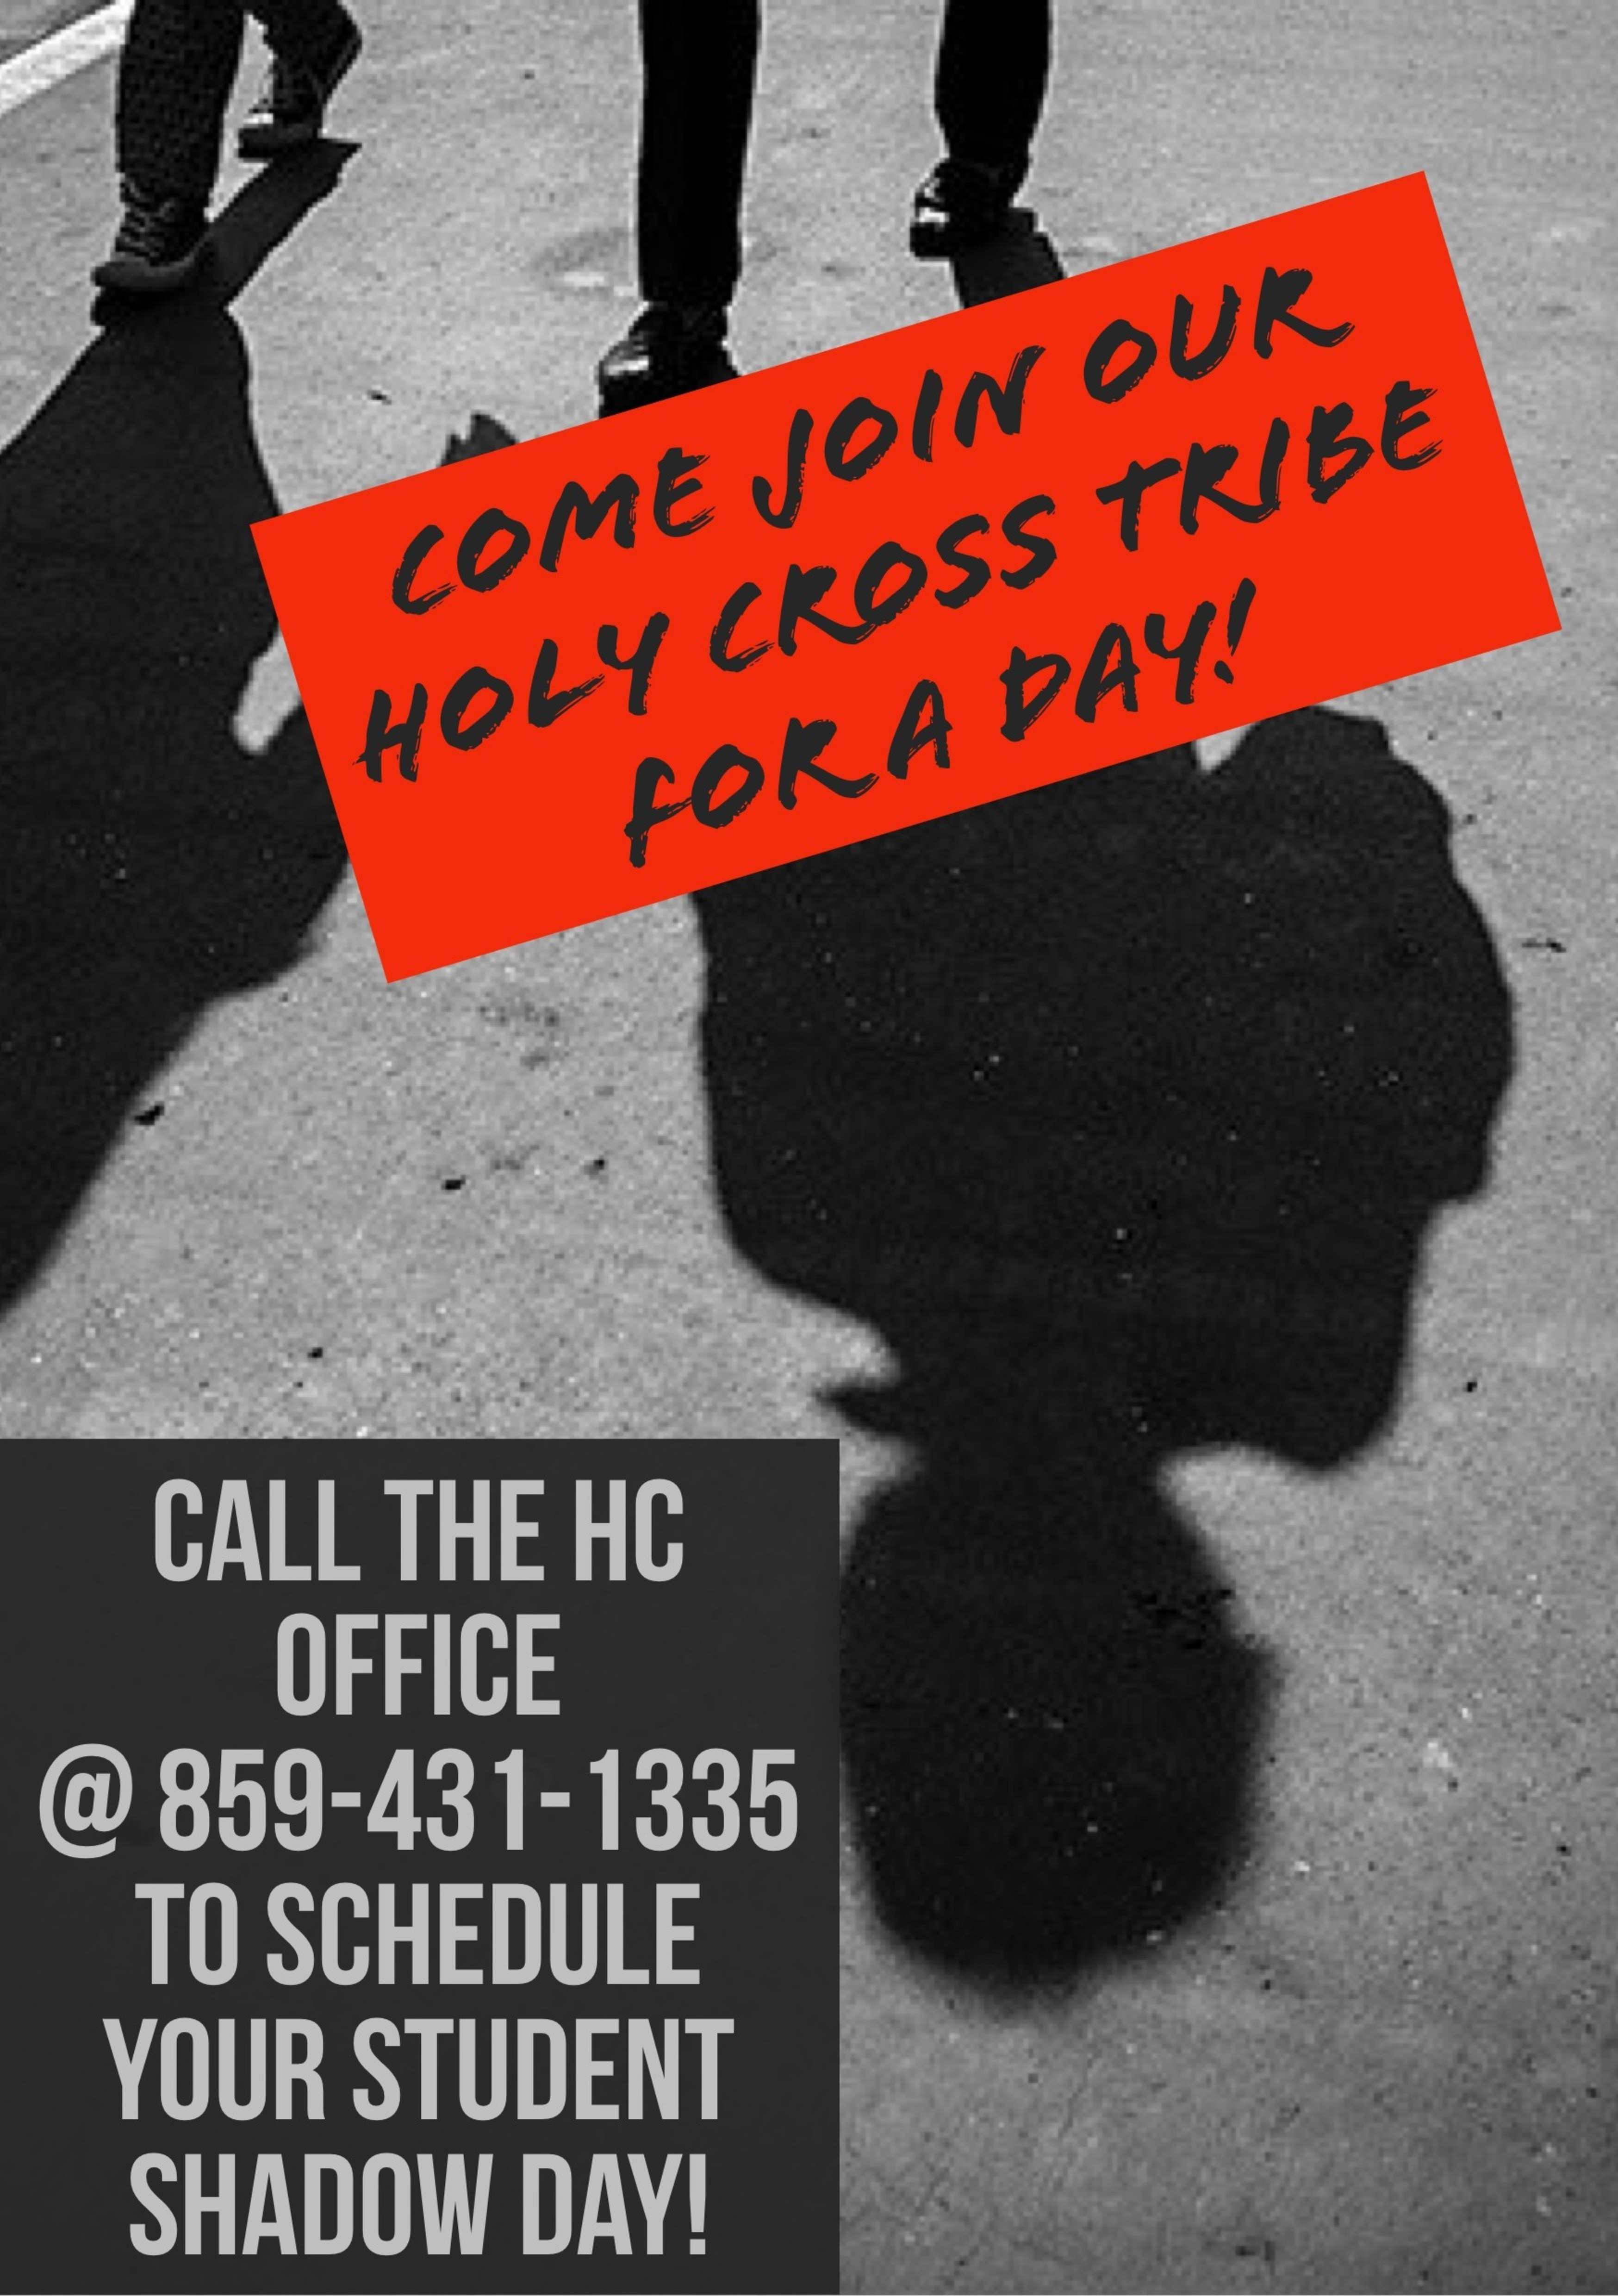 Holy Cross Wants You!